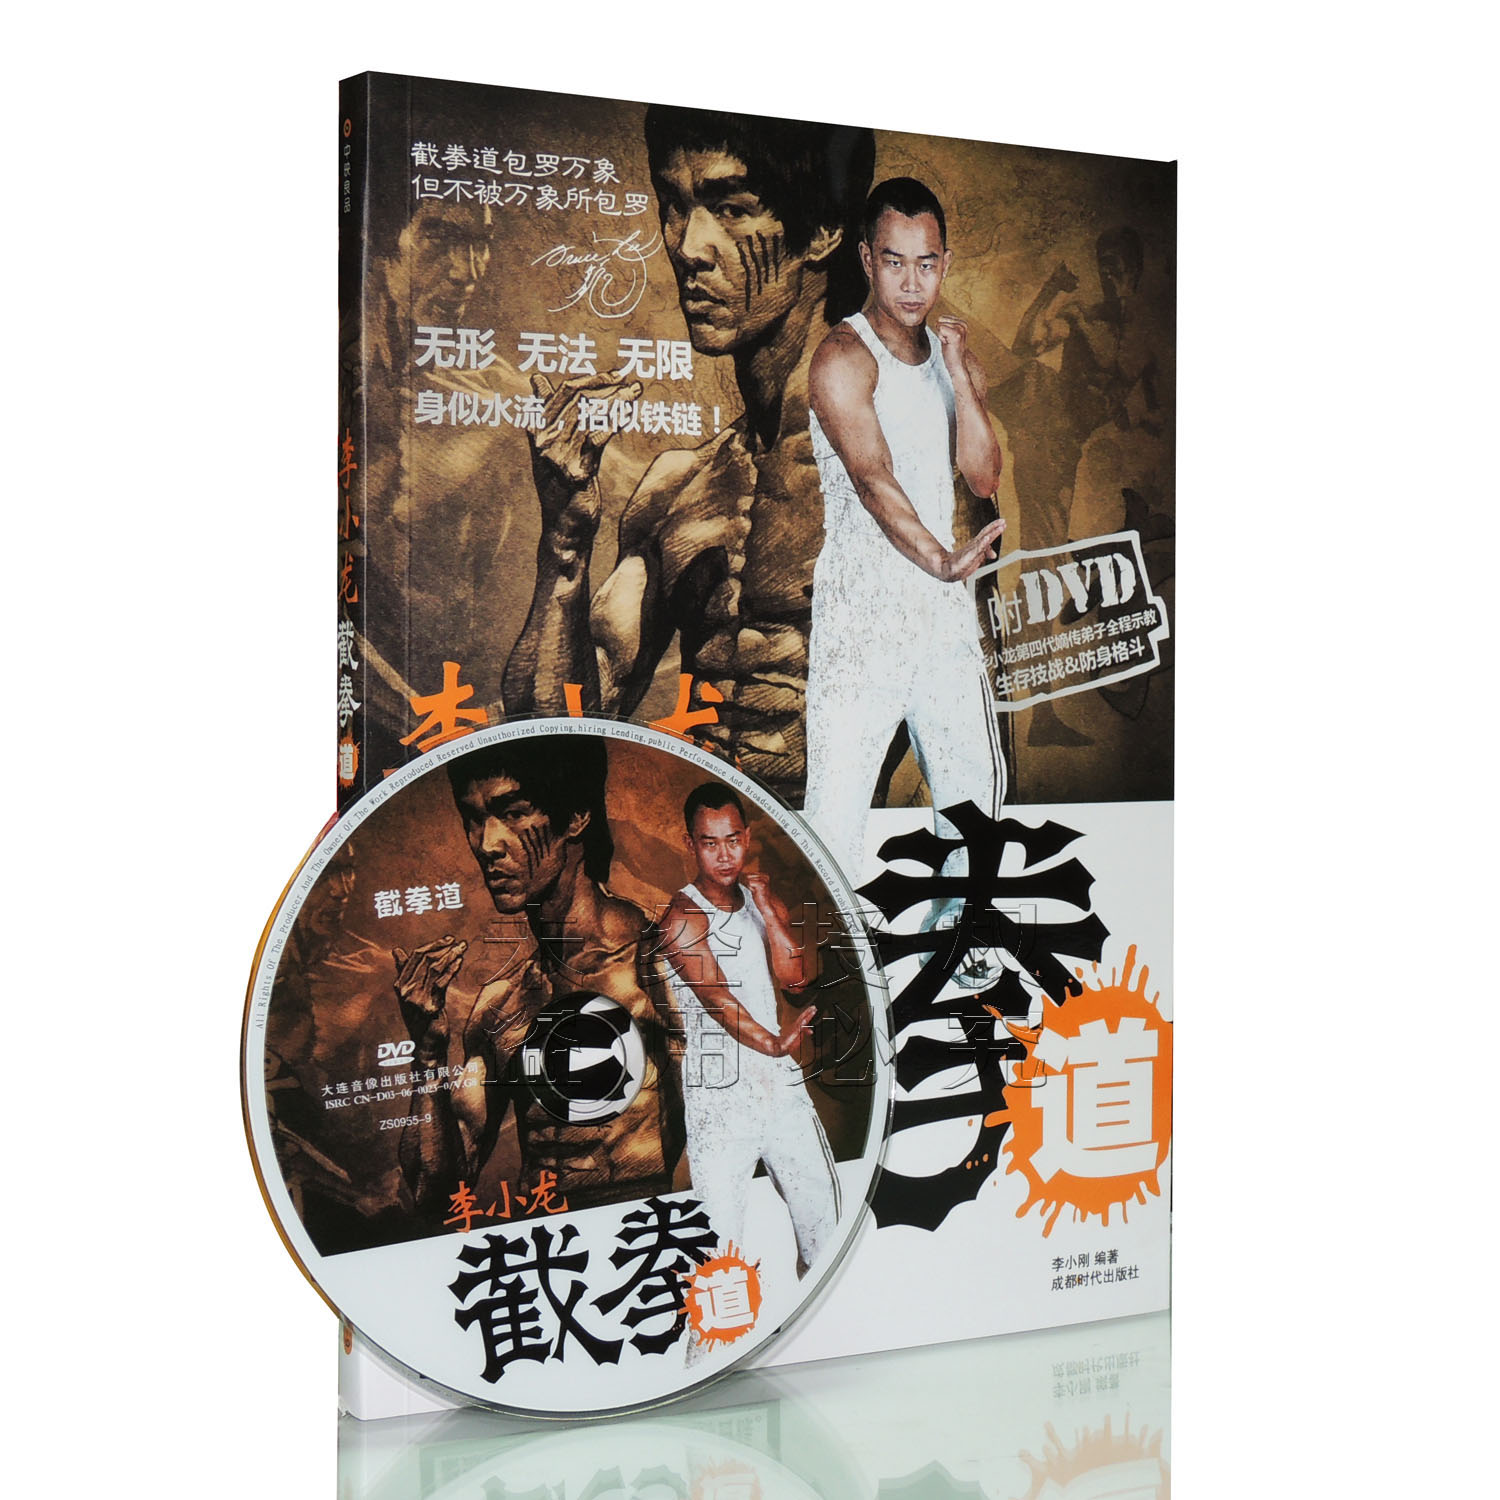 Bruce lee jeet kune do martial arts fighting martial basic beginners video tutorial teaching book + dvd